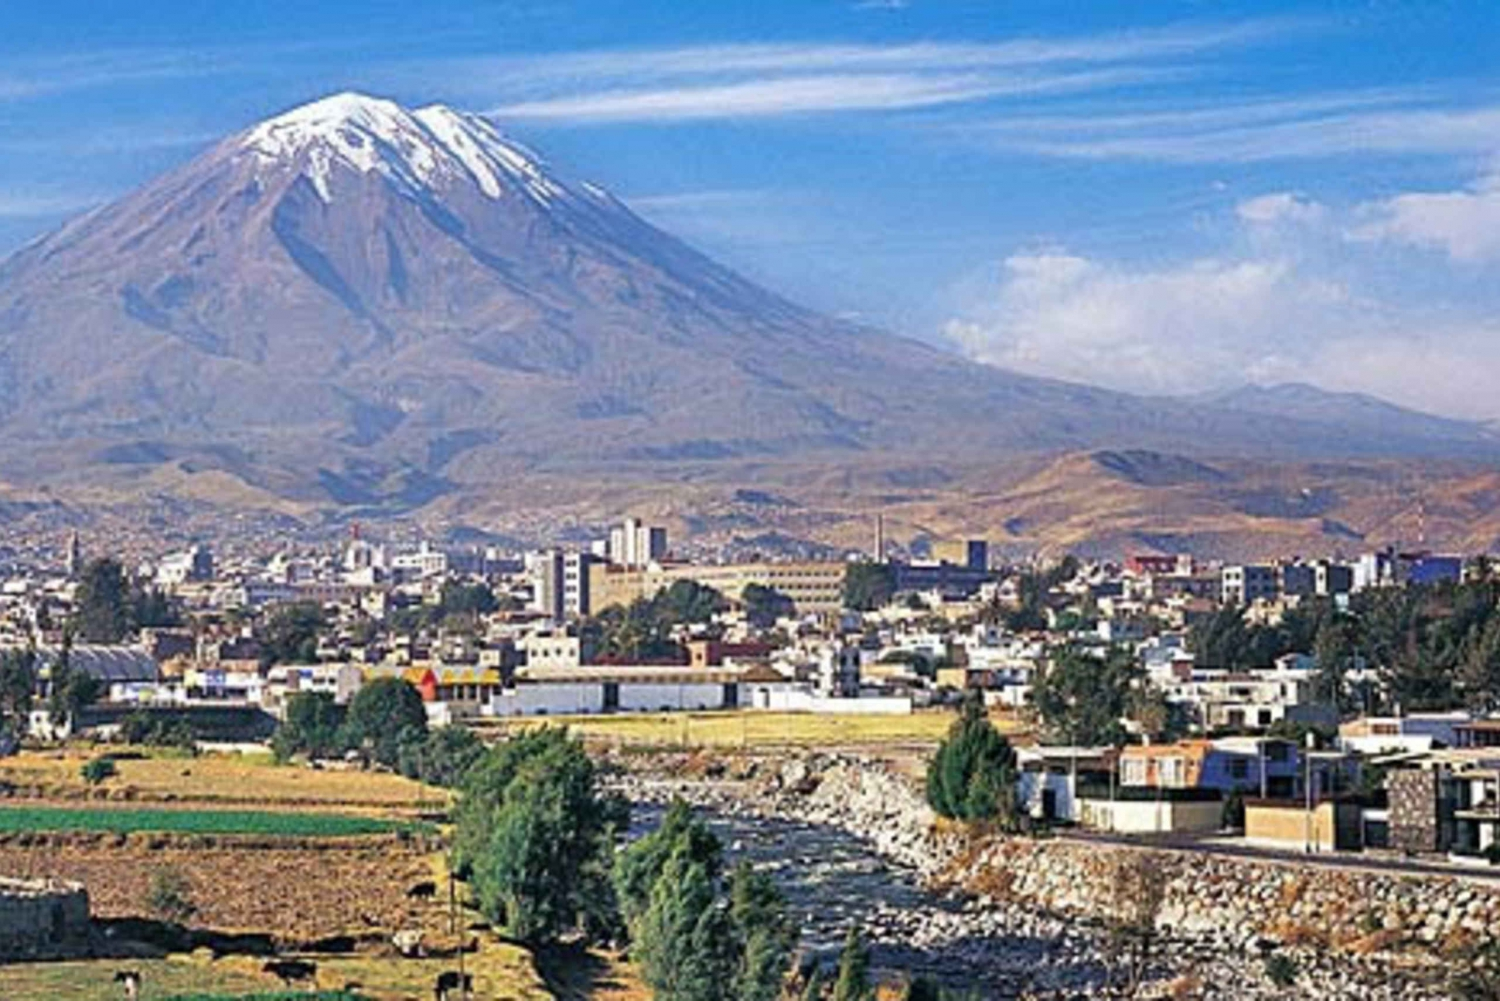 Best tours in and around Arequipa, Peru